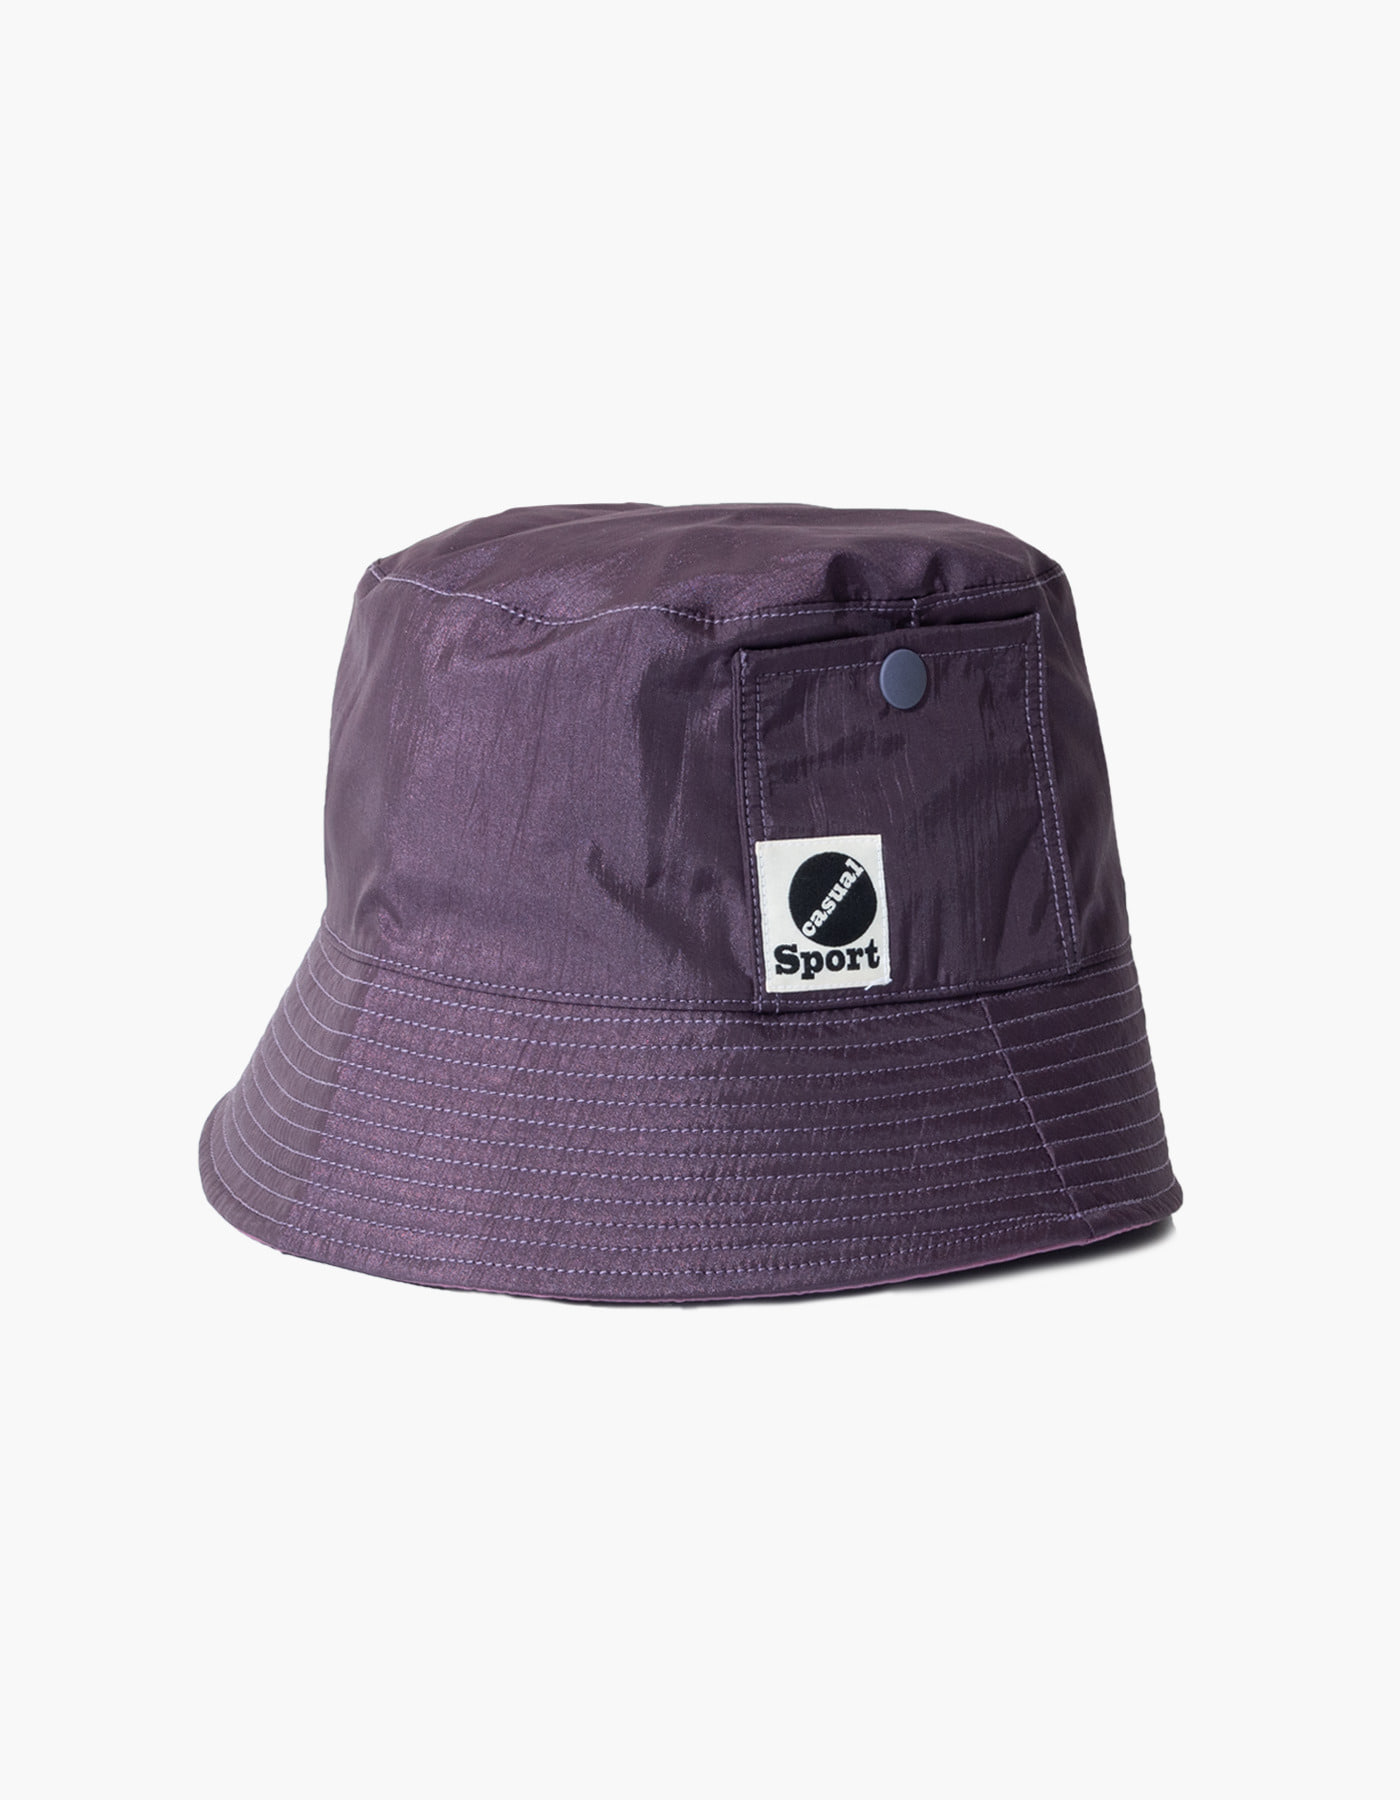 NYLON DIAMOND WASHER BUCKET HAT / PURPLE